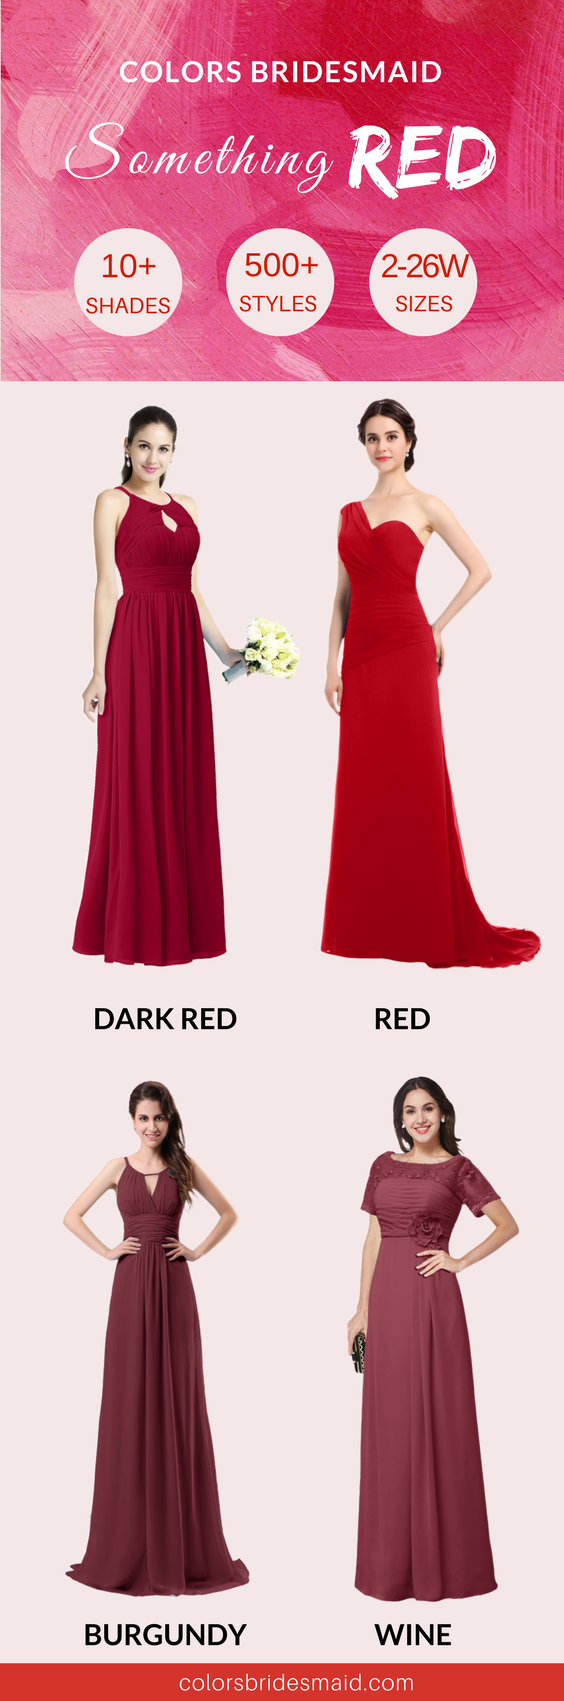 Our red bridesmaid dresses are of 10+ different color shades ...